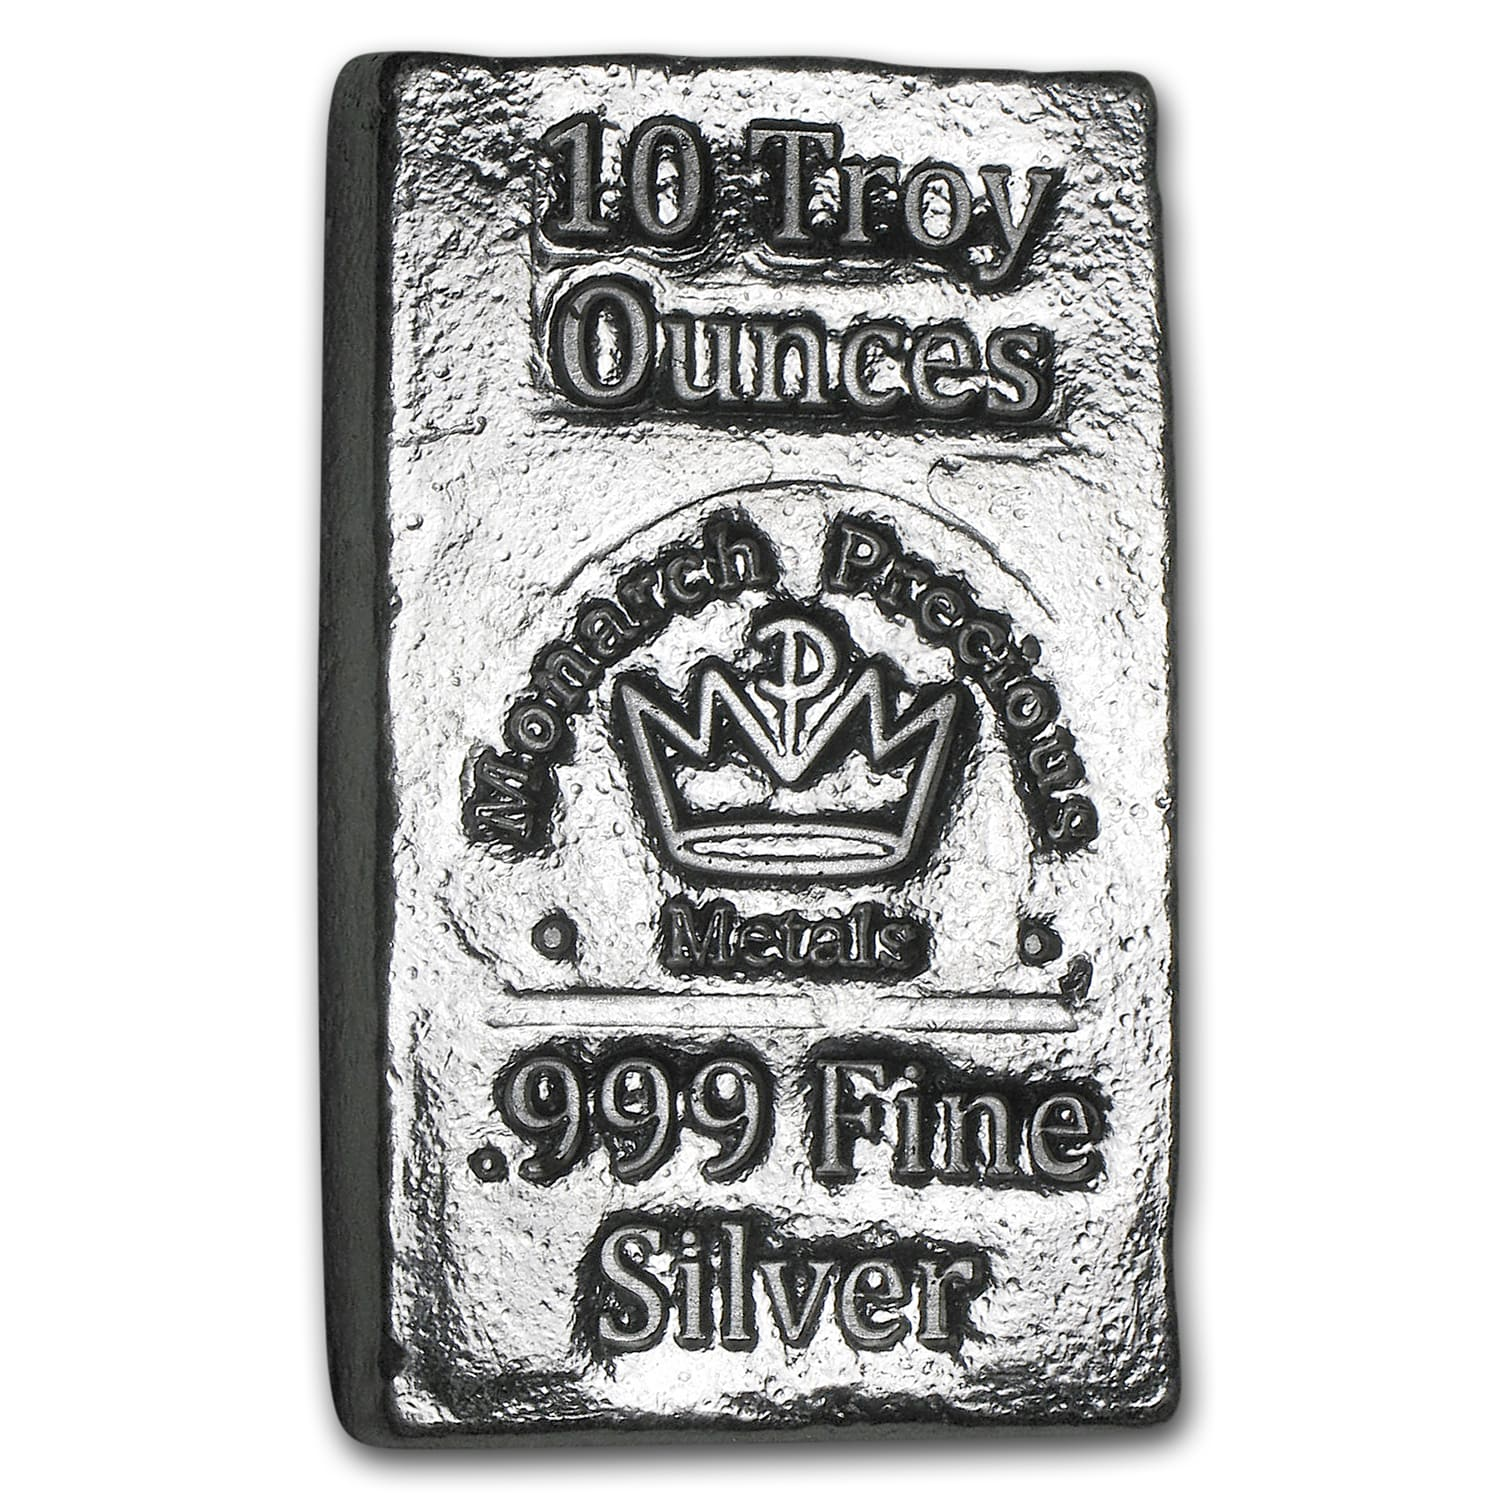 10 oz Silver Bar - Monarch Precious Metals